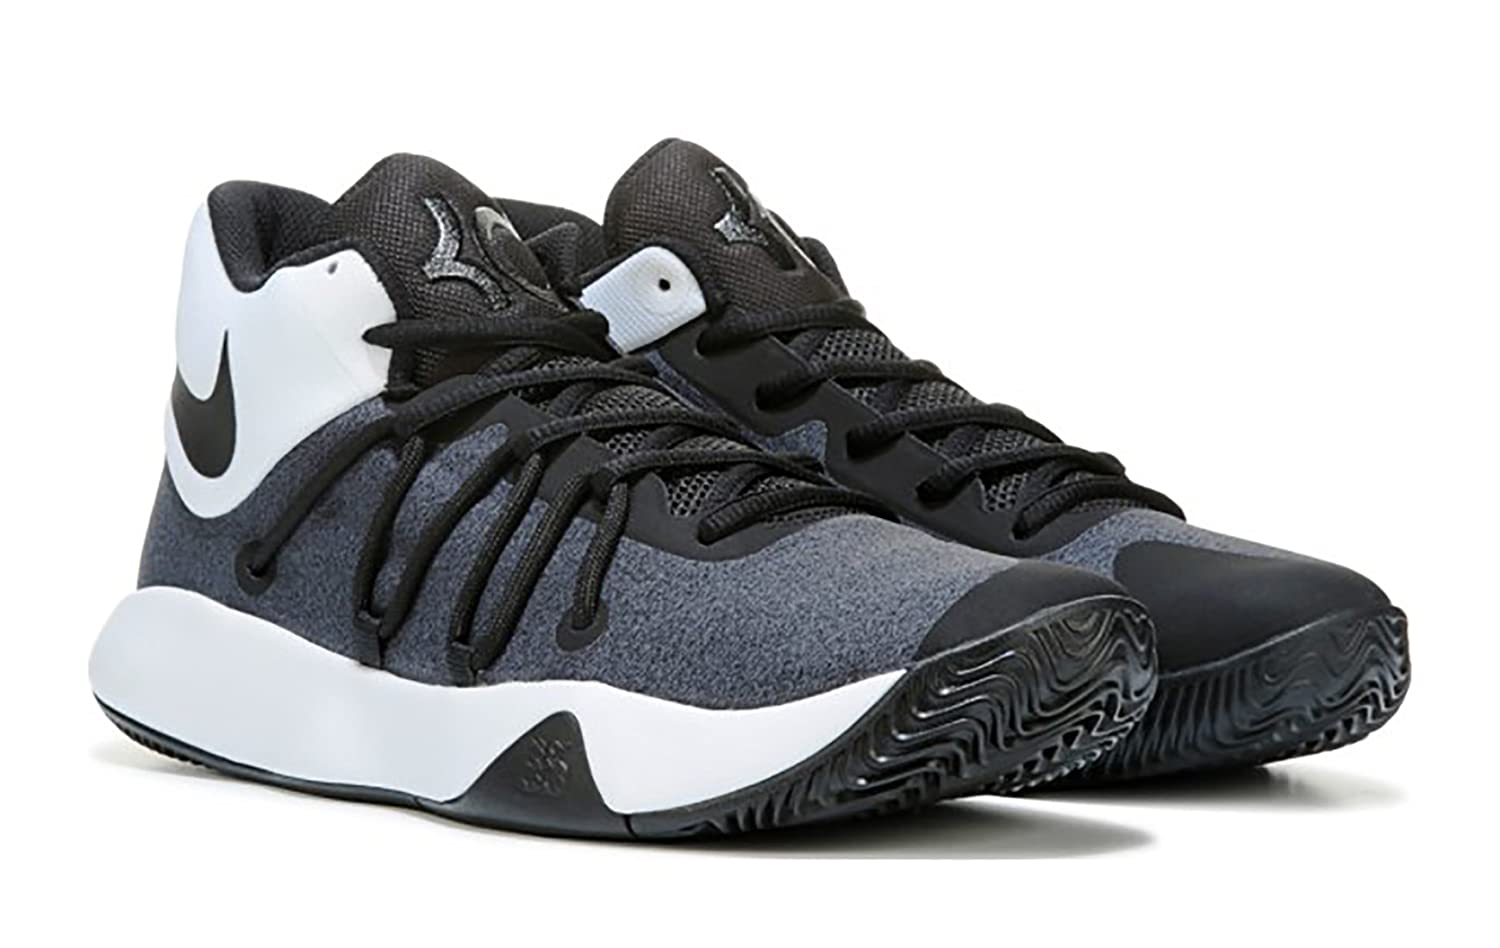 finest selection 1300e 5189a Nike Men s KD Trey 5 V Basketball Shoe Black White Size 10 M US  Buy Online  at Low Prices in India - Amazon.in